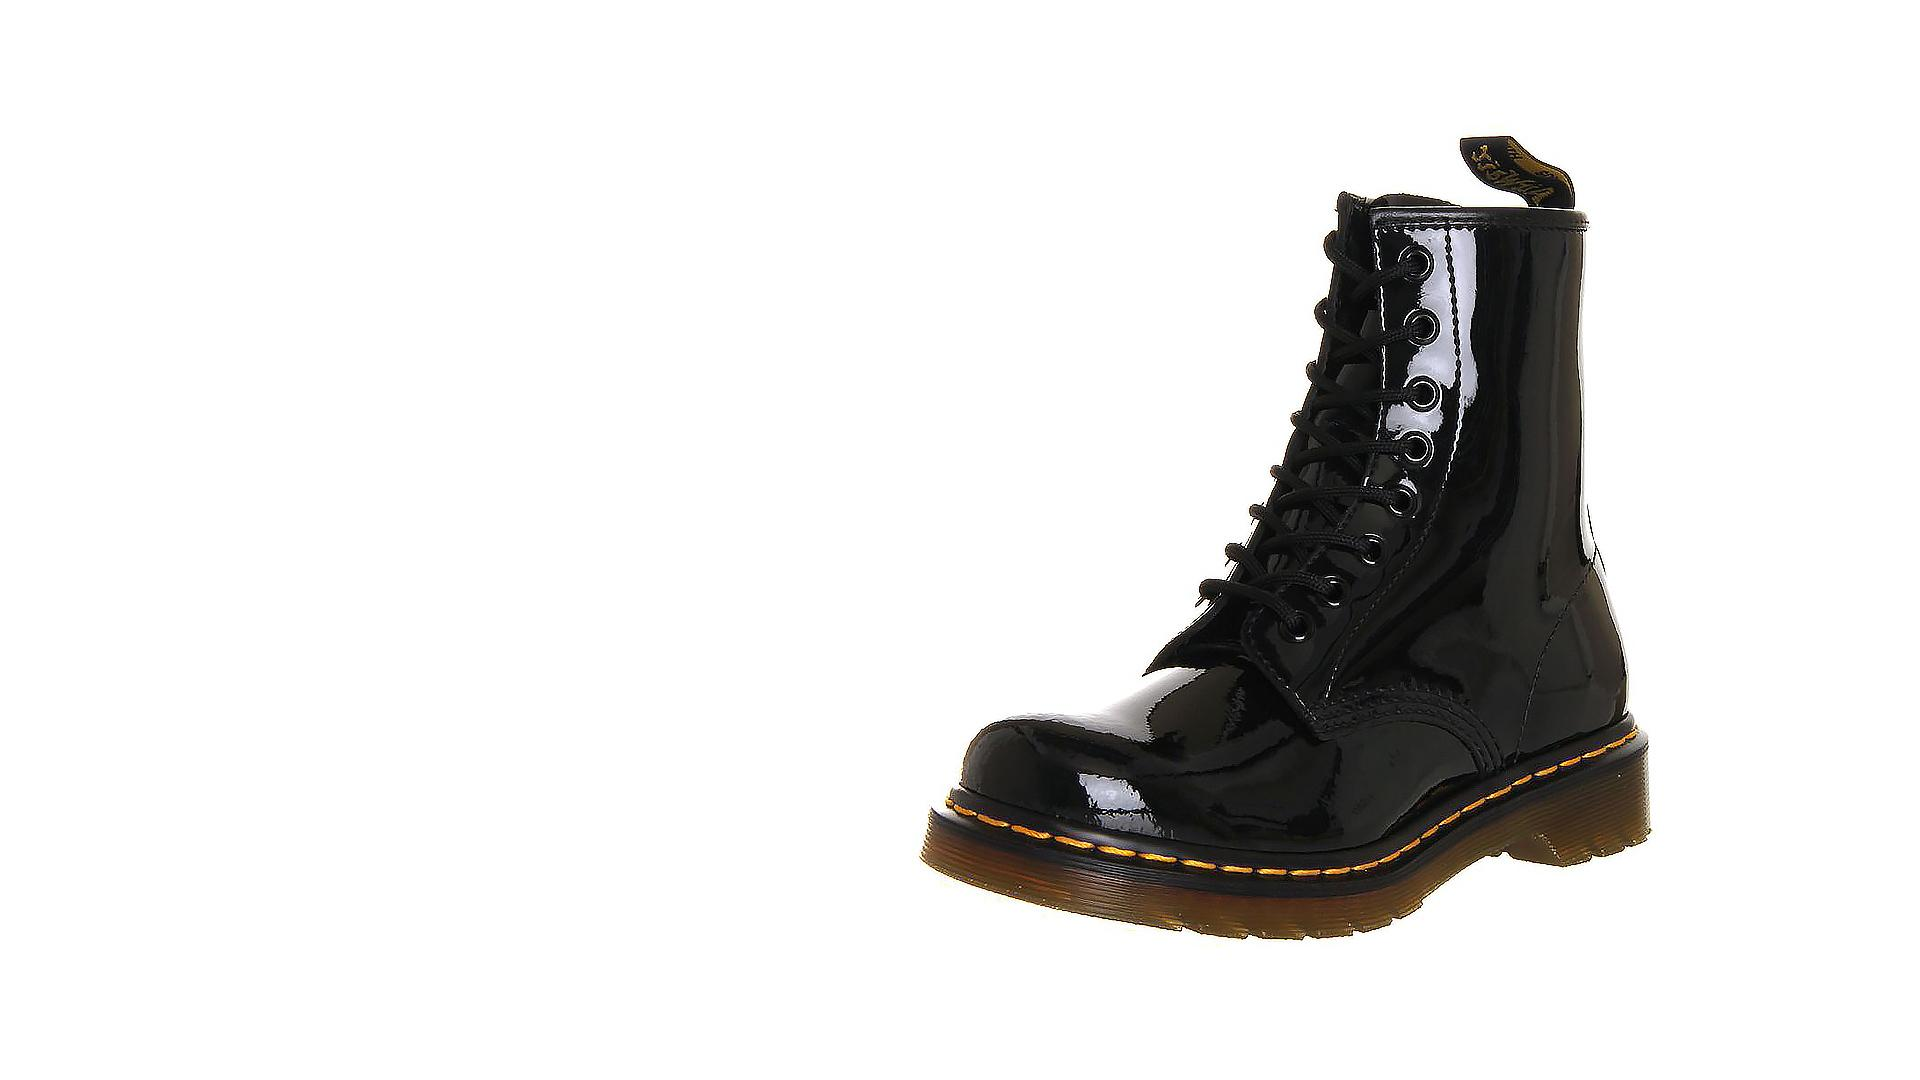 Eyelet  Boots - The Age Of Luna - Body & Soul